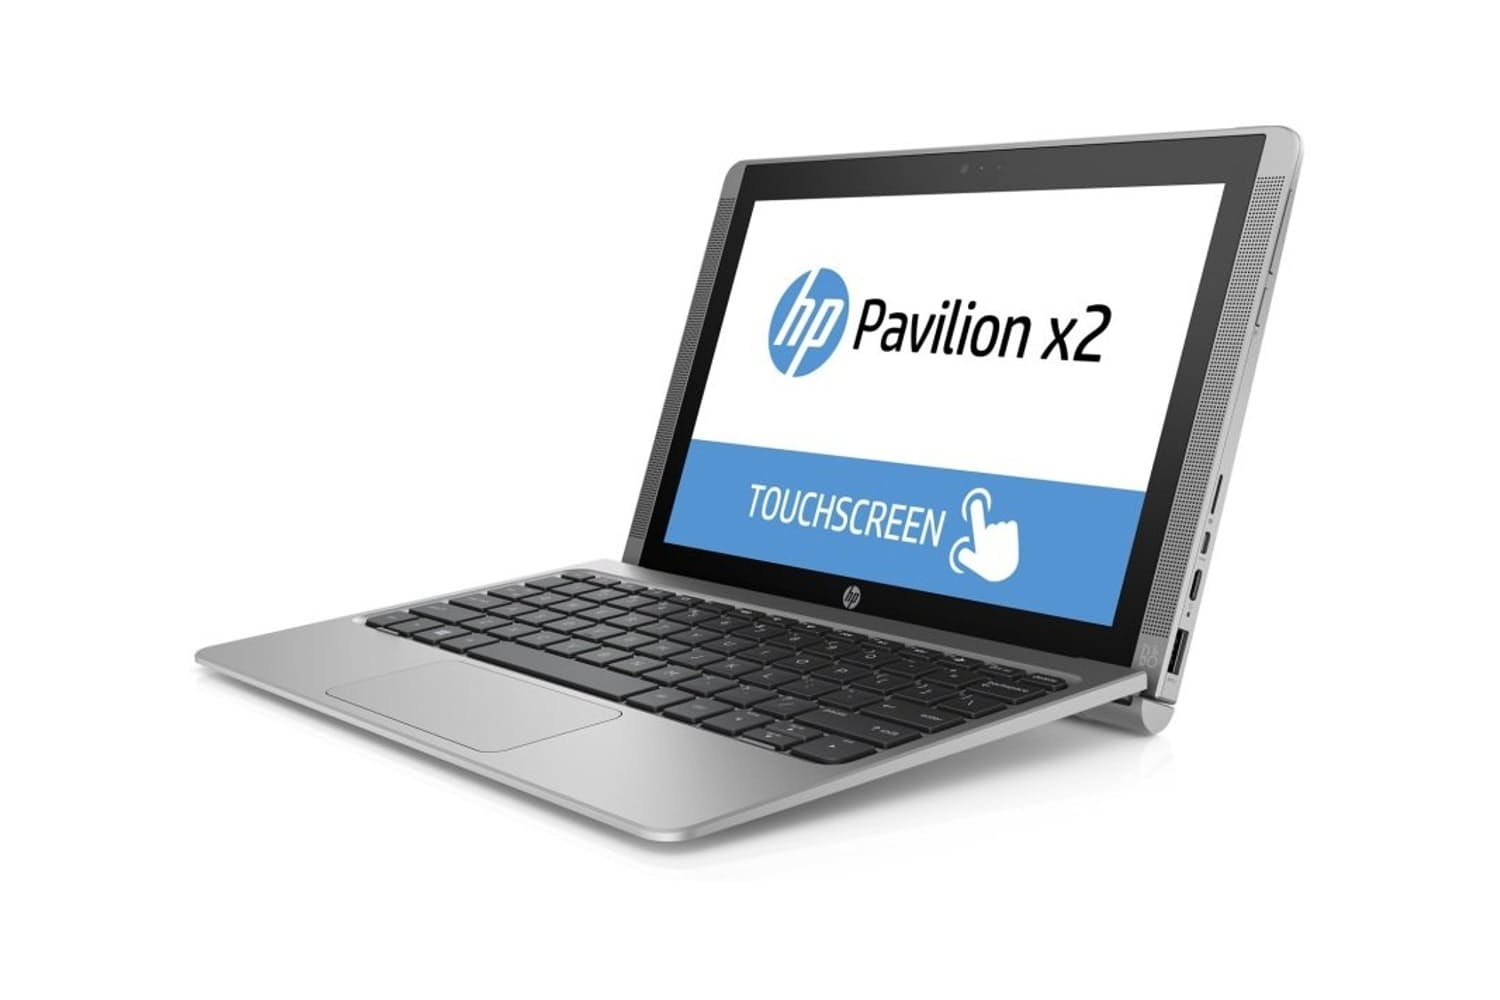 mały laptop, hp Pavilion